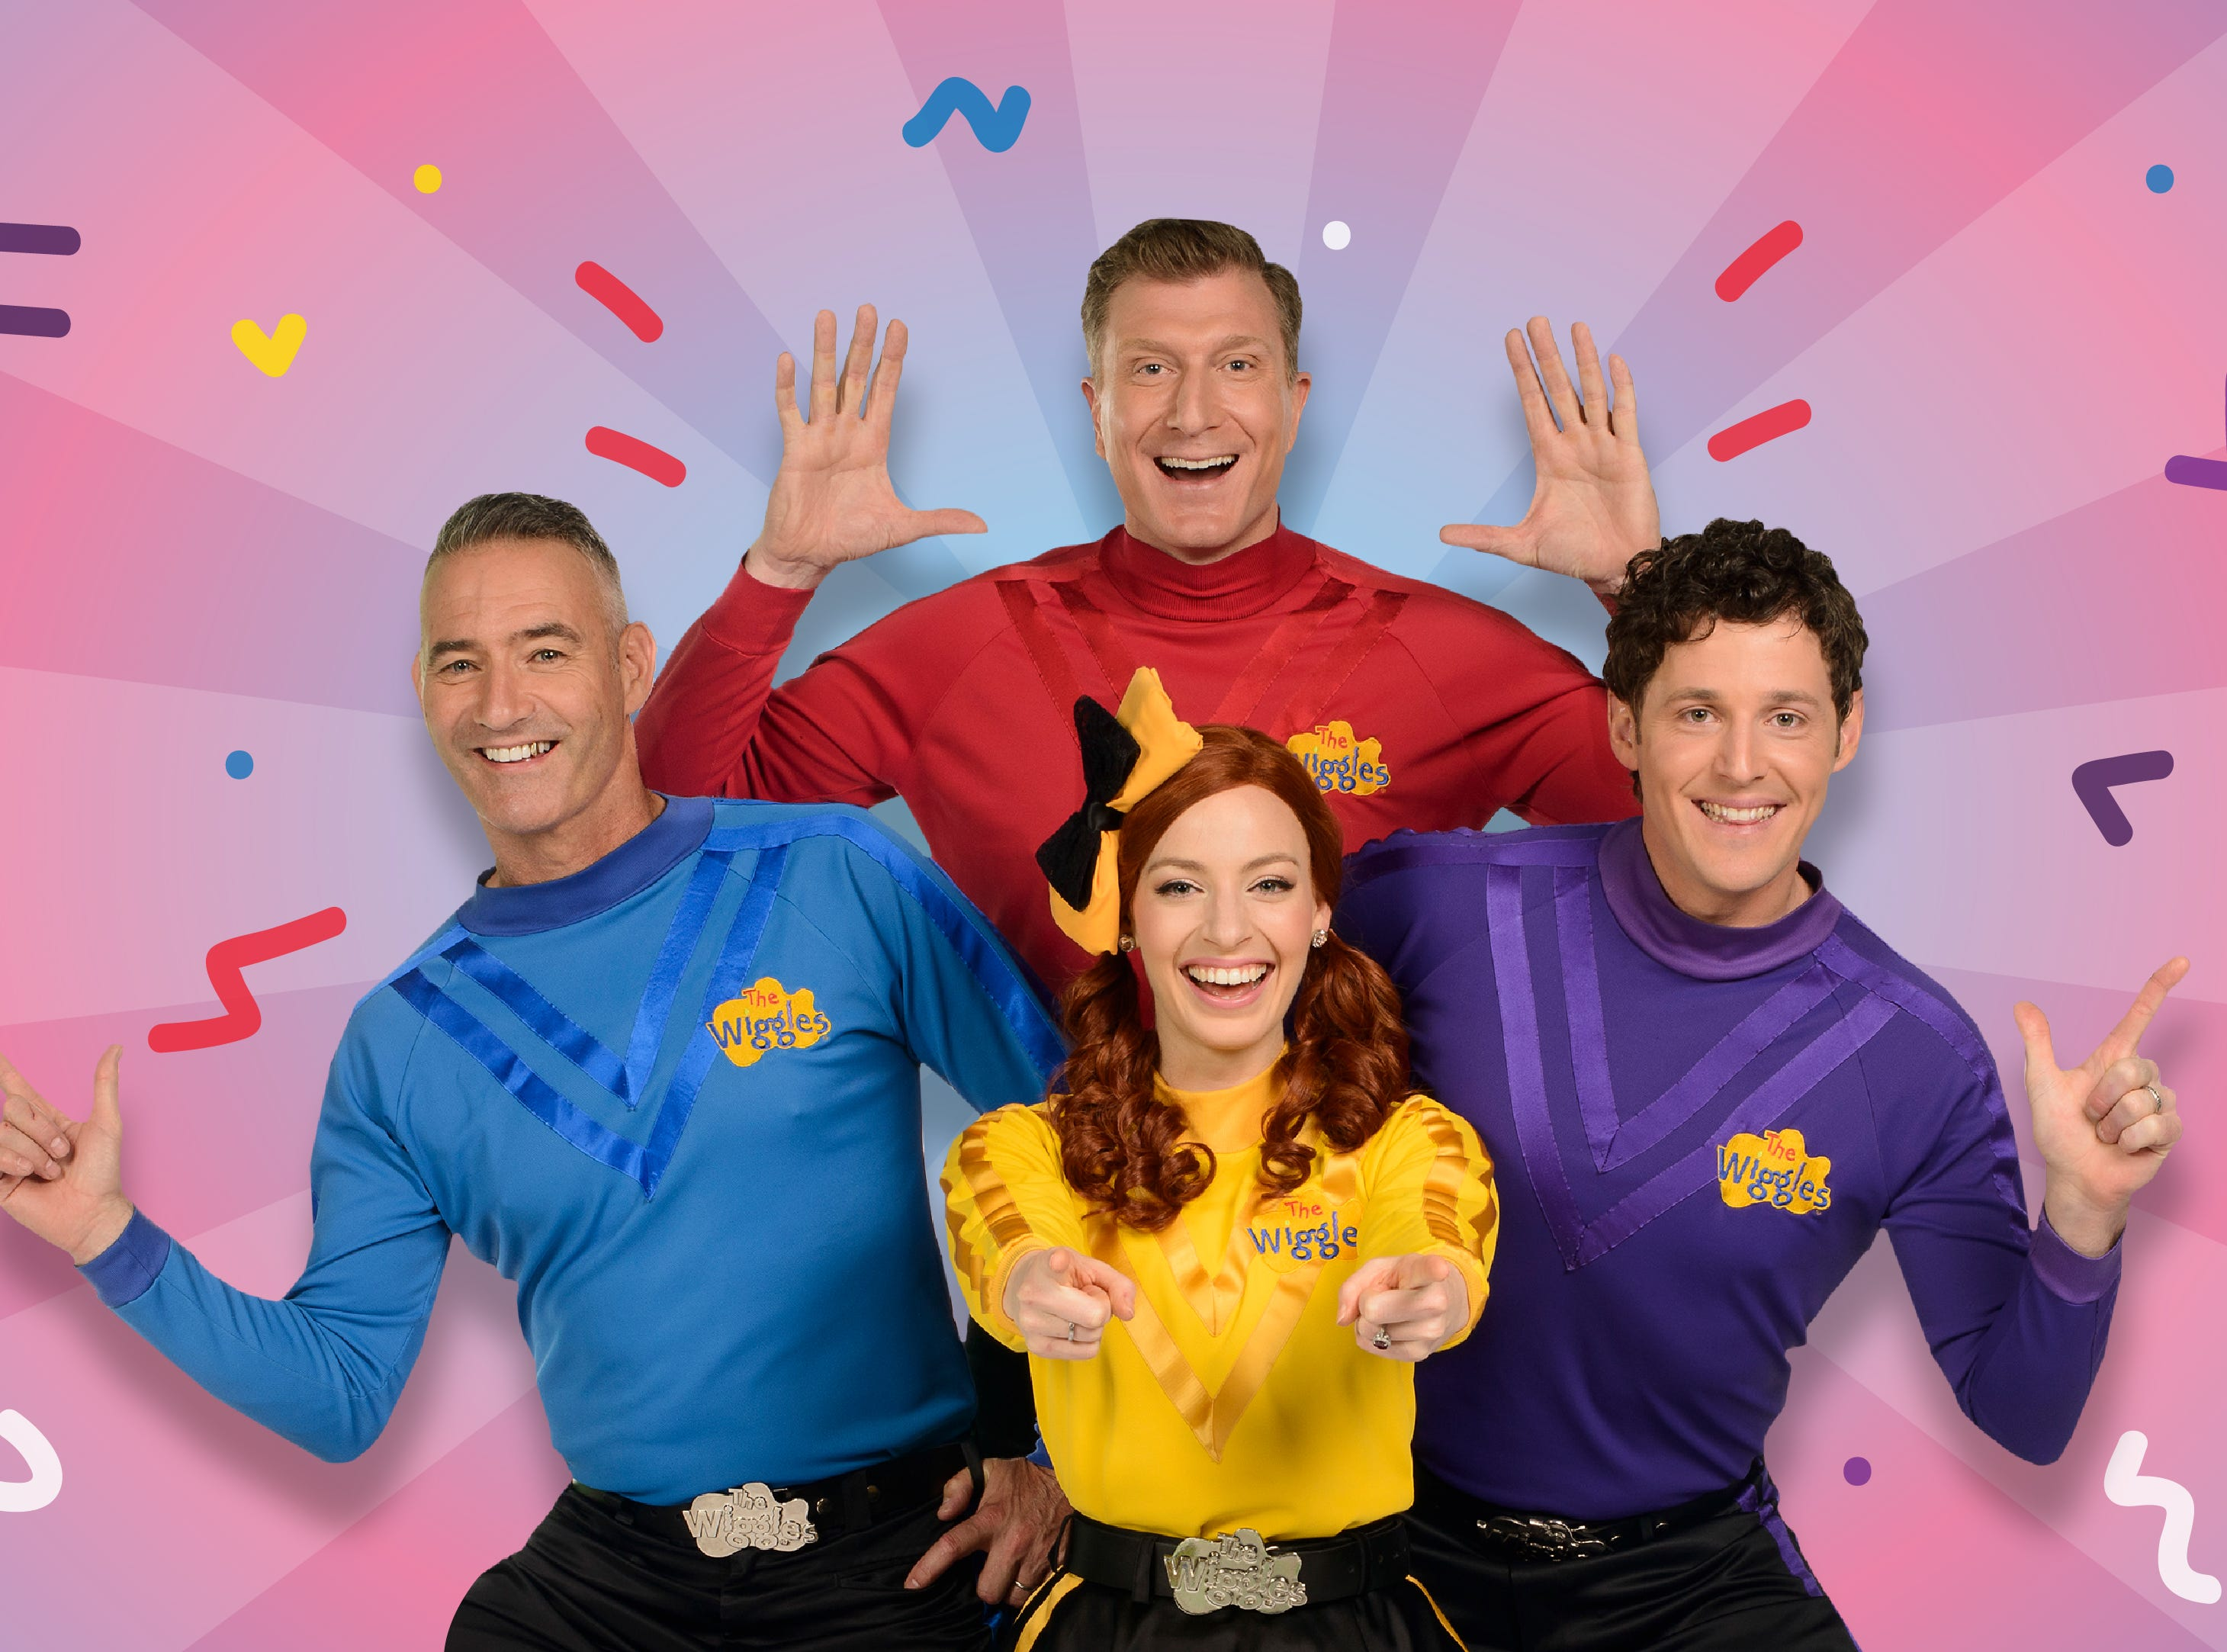 'The Wiggles' are back! The children's music group is touring the US this summer